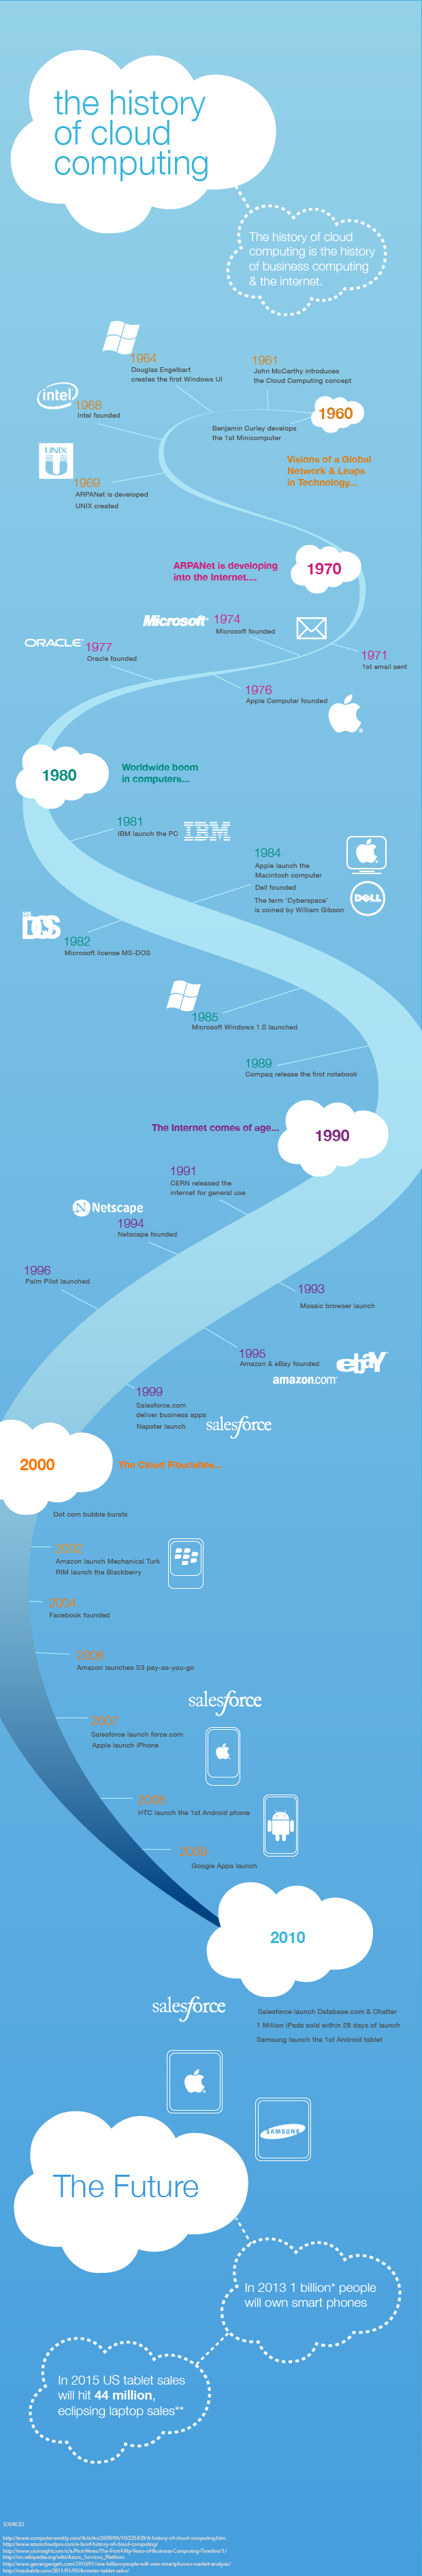 A Complete History of Cloud Computing